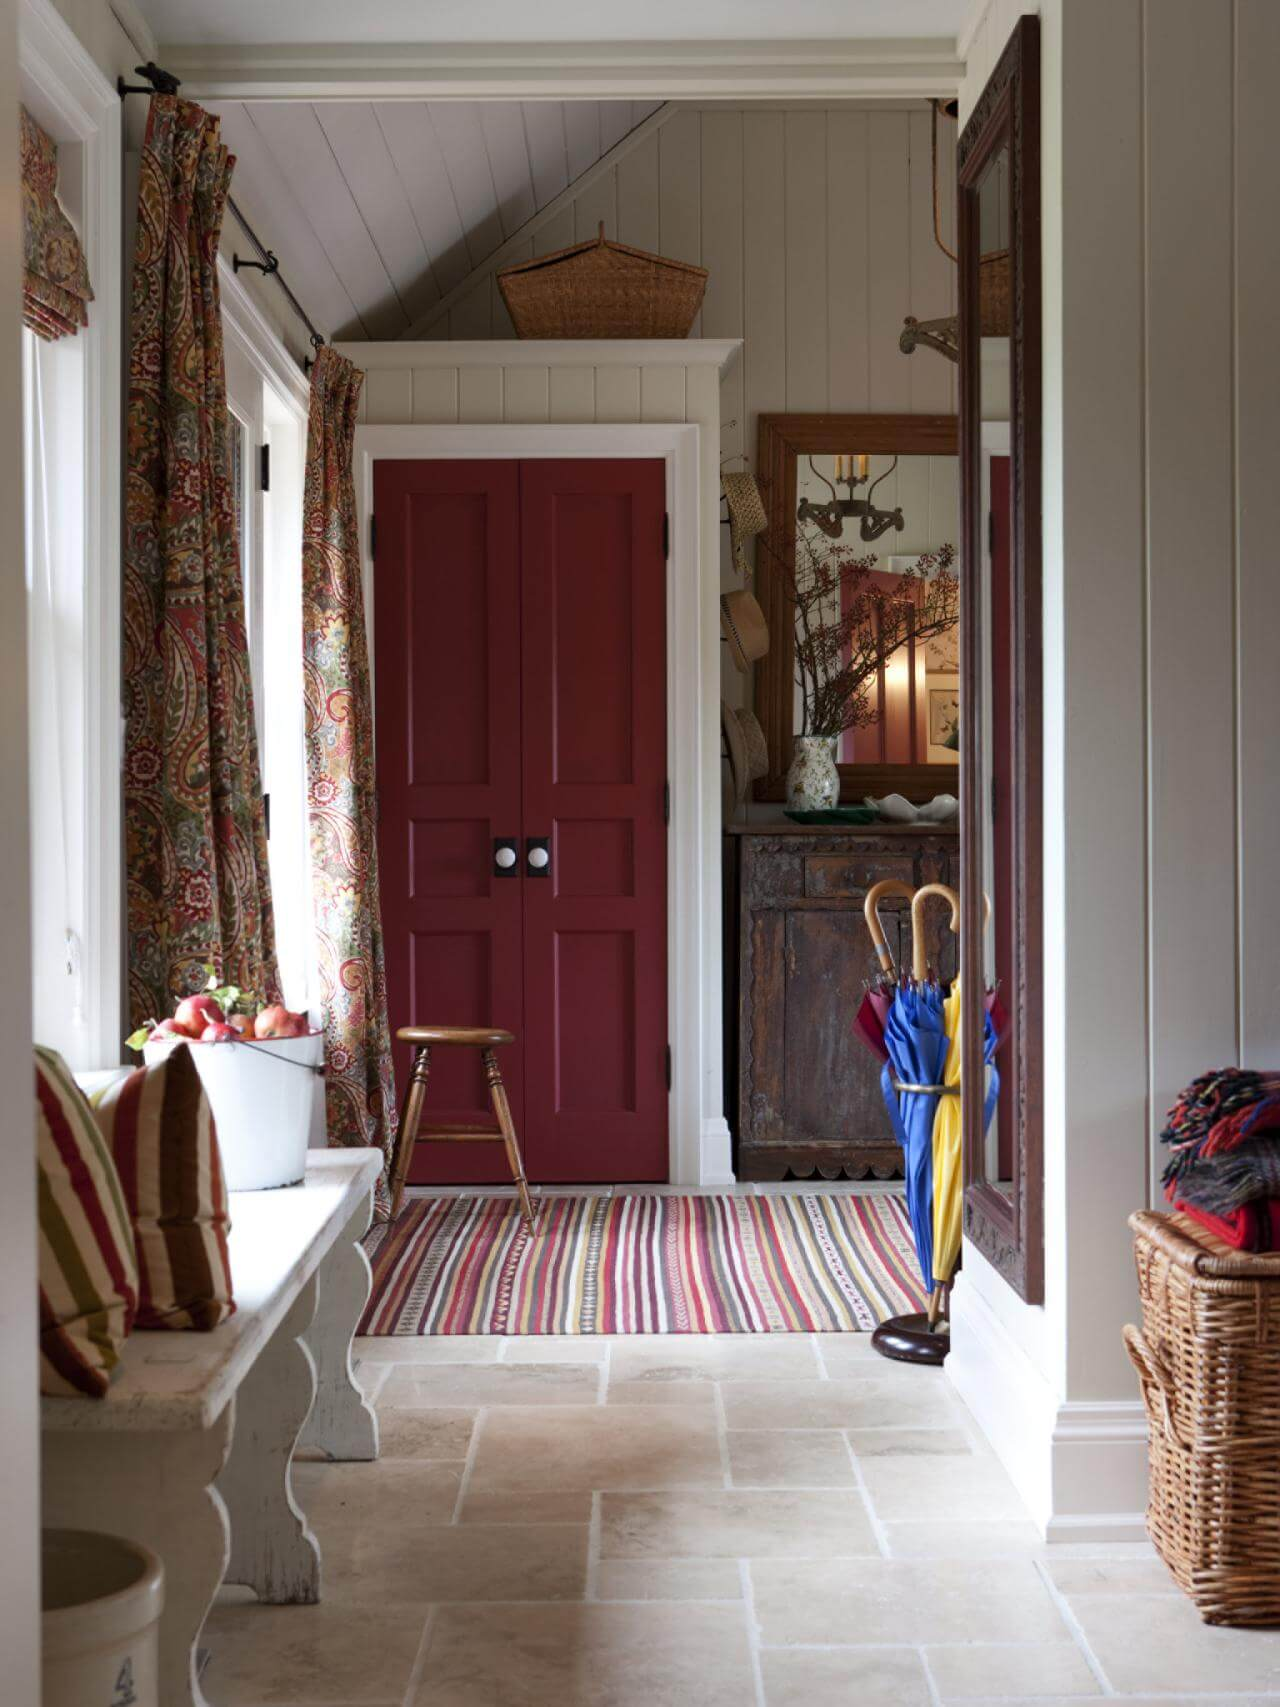 Entry Foyer Plans : Superb mudroom entryway design ideas with benches